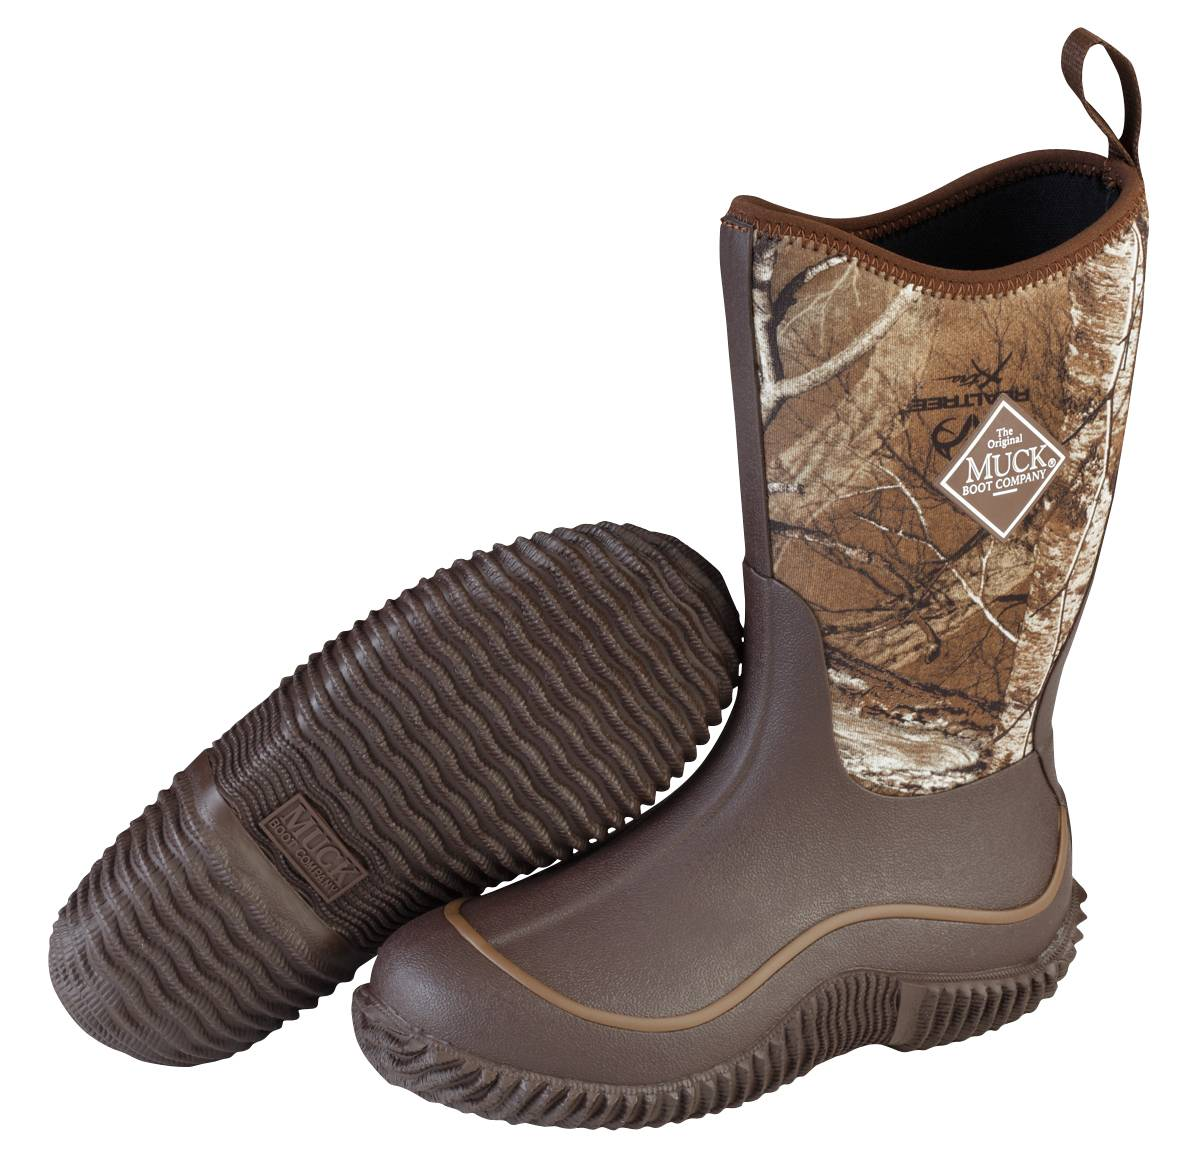 Muck Boots Hale Boots - Kids - Chocolate Brown Realtree Xtra